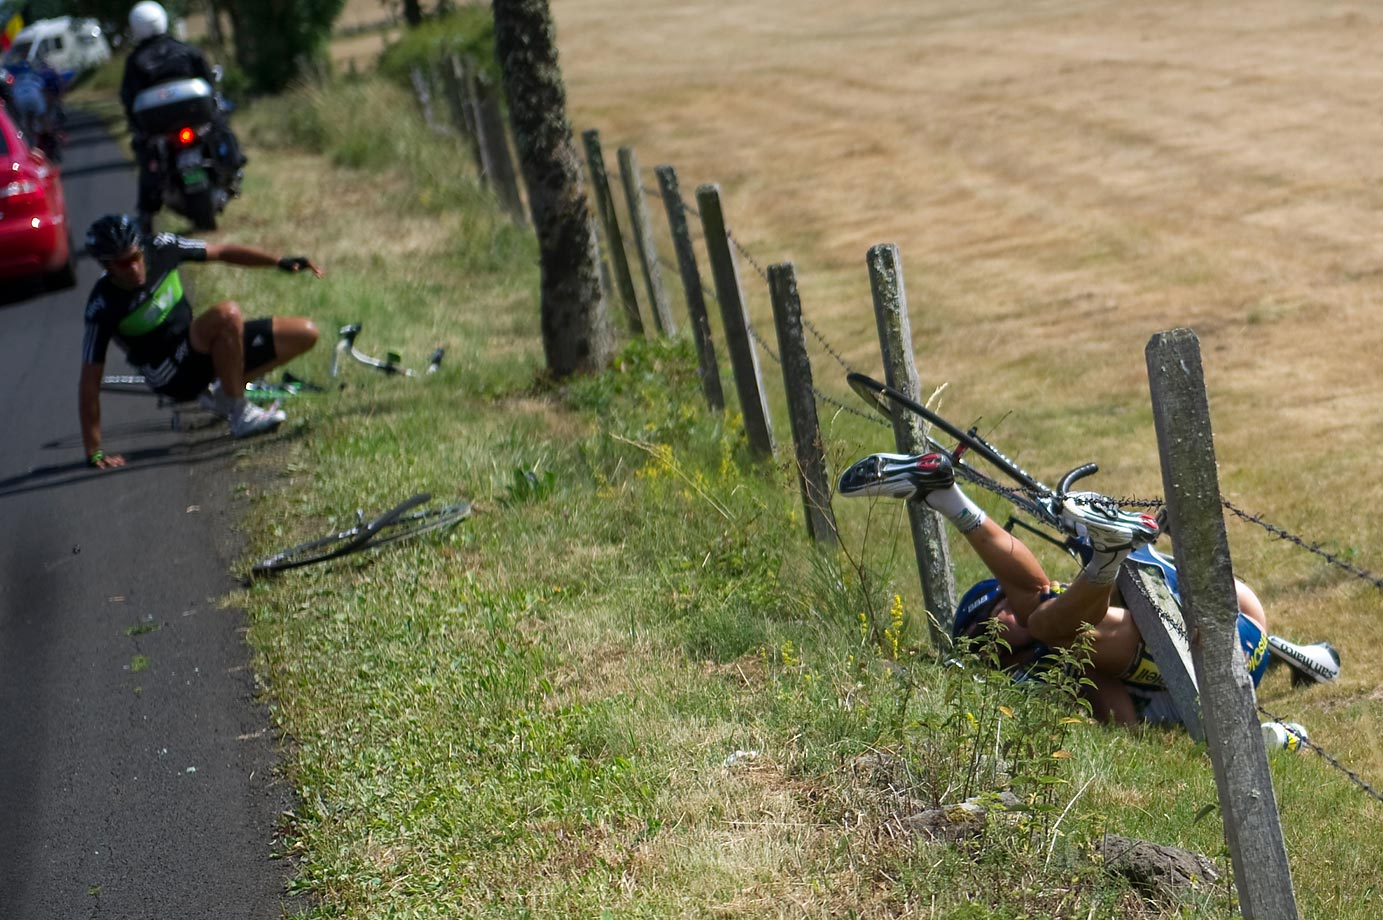 "Juan Antonio Flecha (left) and Johnny Hoogerland (entangled in fence) were run off the road by a shockingly reckless driver in stage 9 of the 2011 Tour.  Hoogerland went flipping into a barbed wire, suffering deep cuts that would take 33 stitches to close. Incredibly, he and Flecha both finished the stage, and were jointly awarded the Tour's ""Combativity Award"" for the day. The driver of the car, belonging to France Television 2/3, was expelled from the race."